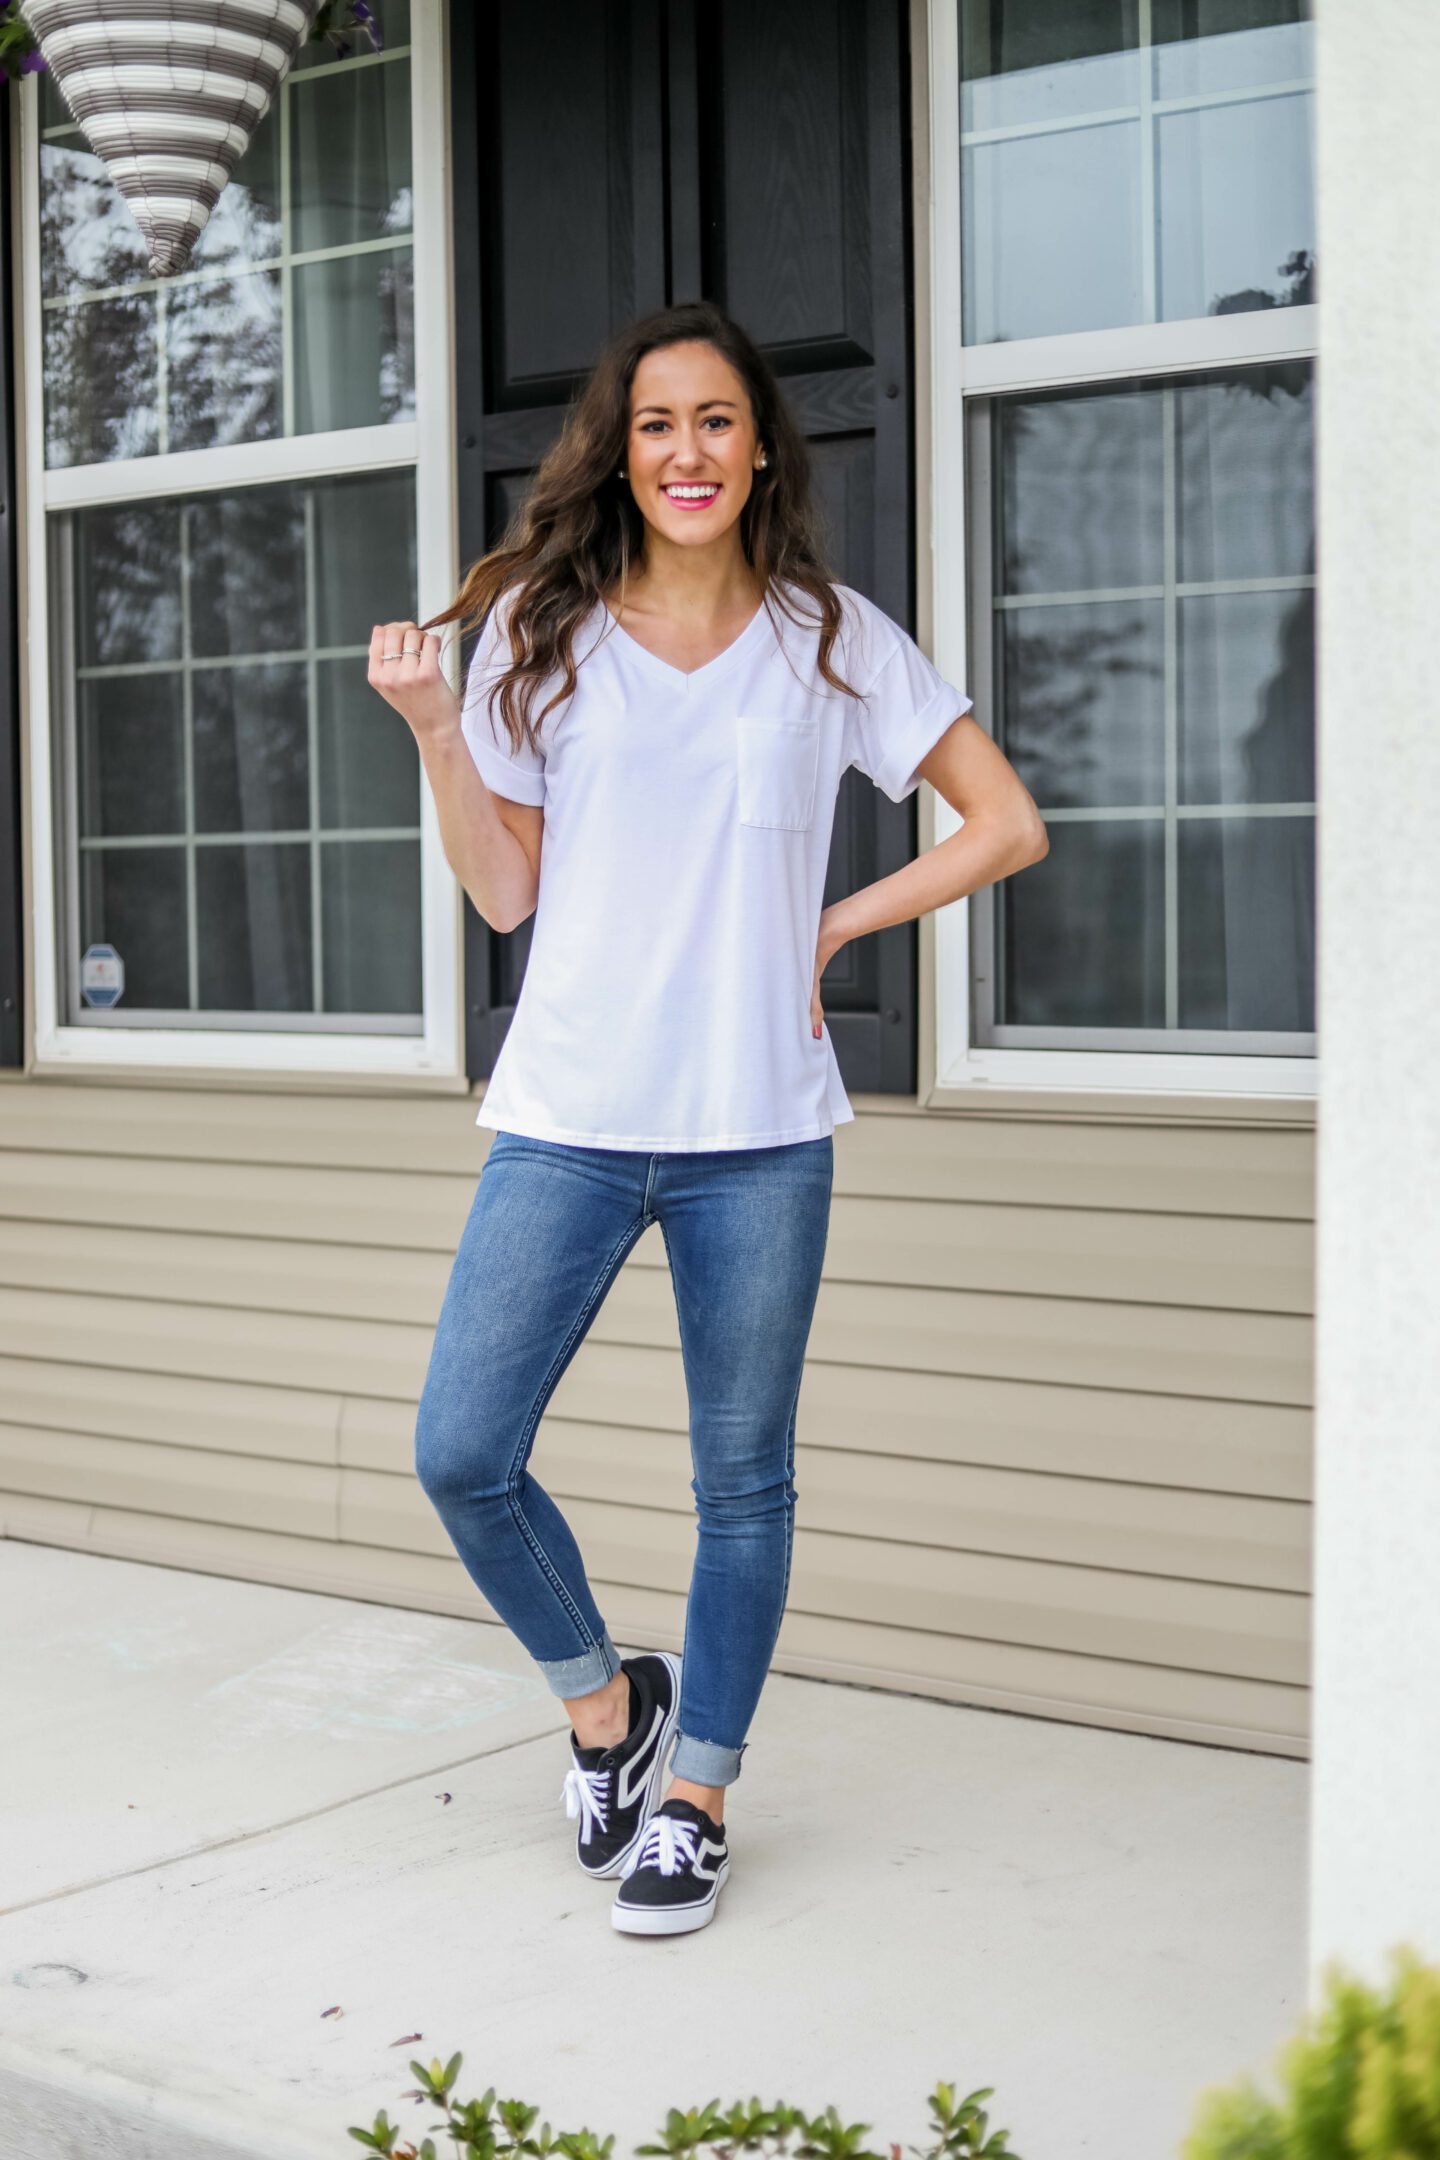 THE BEST WHITE T-SHIRTS (updated!) - Reviewing Aerie, Amazon, Target, J. Crew, Abercrombie + MORE white t-shirts on Coming Up Roses